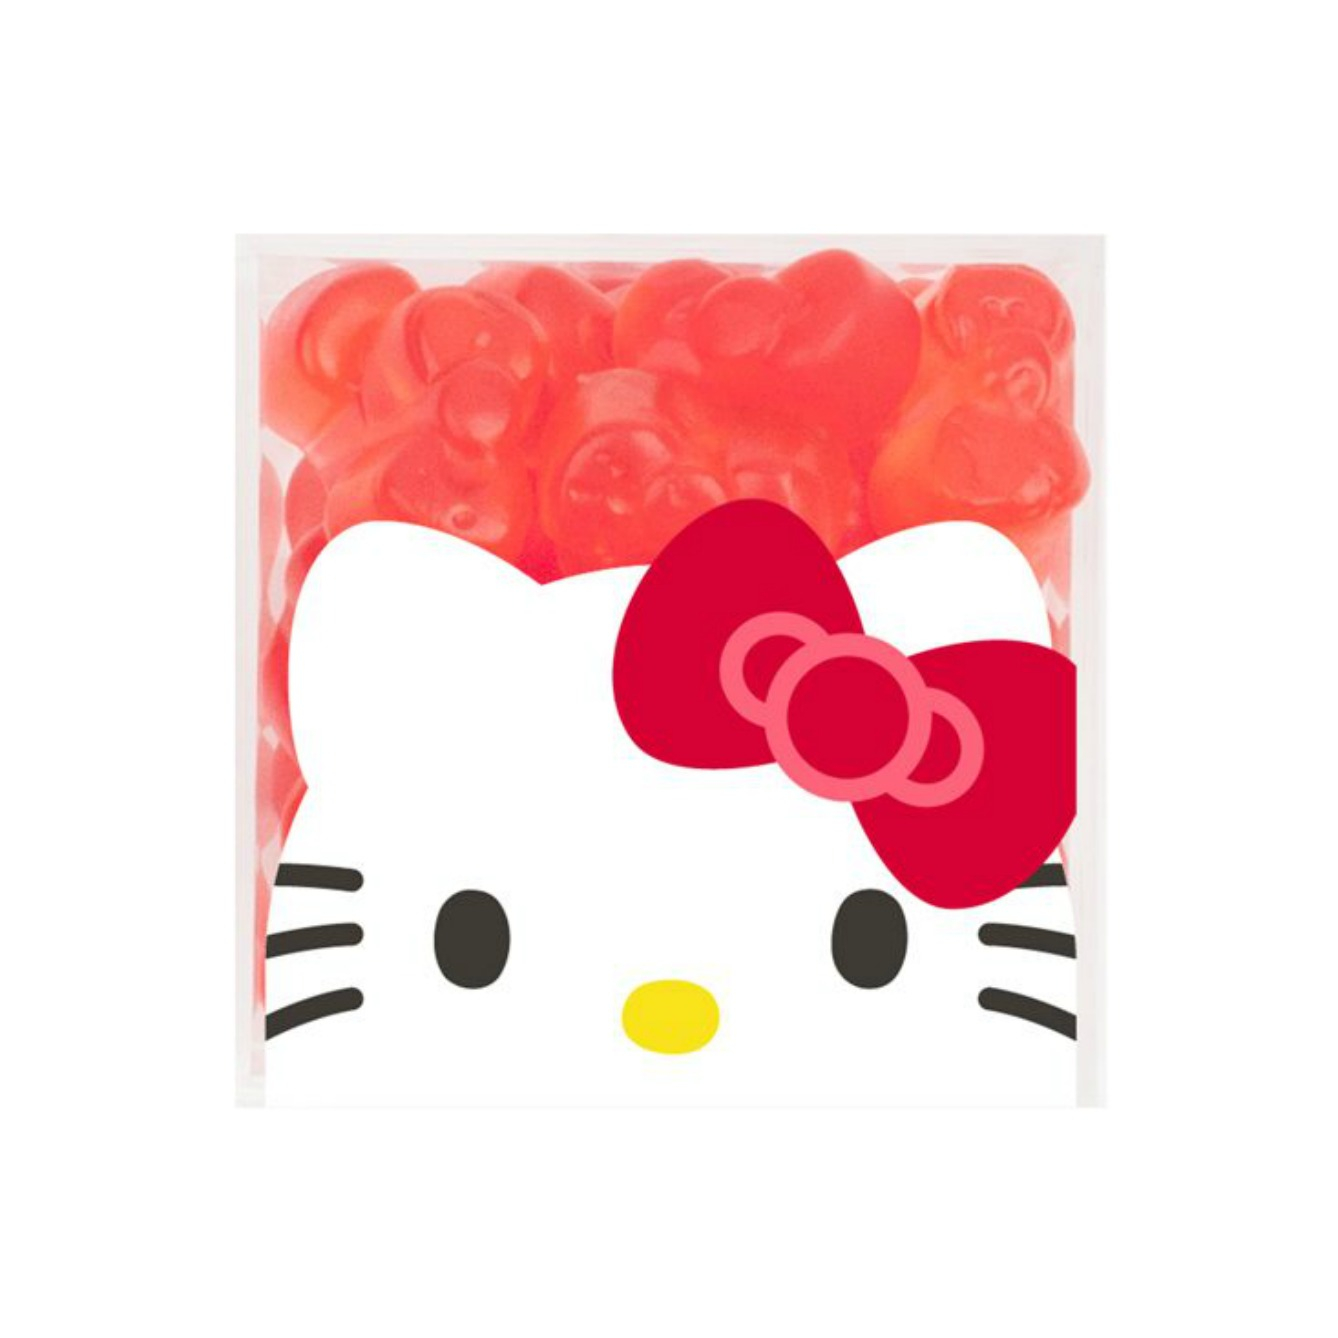 Hold Up: Hello Kitty Candy Exists